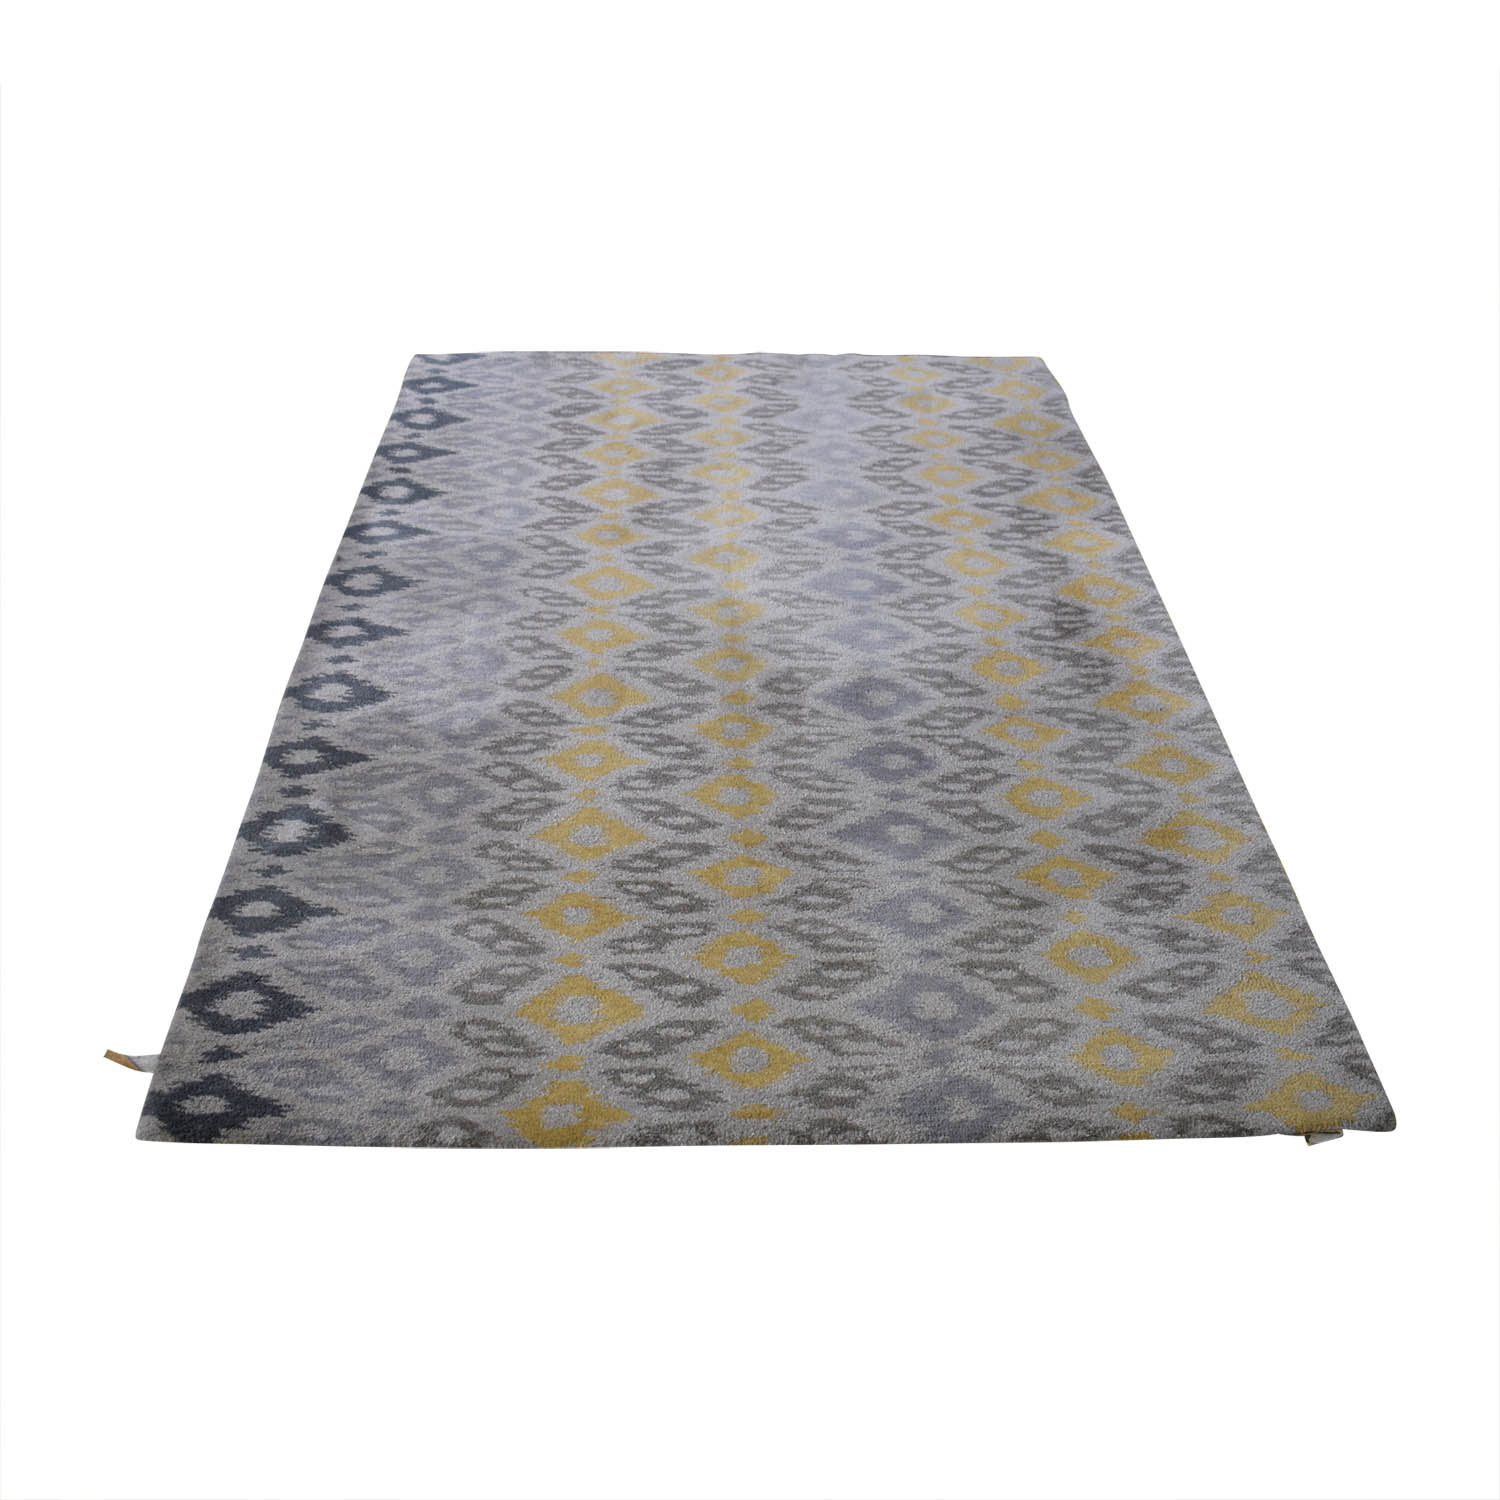 Crate & Barrel Crate & Barrel Phila Ikat Wool Rug used